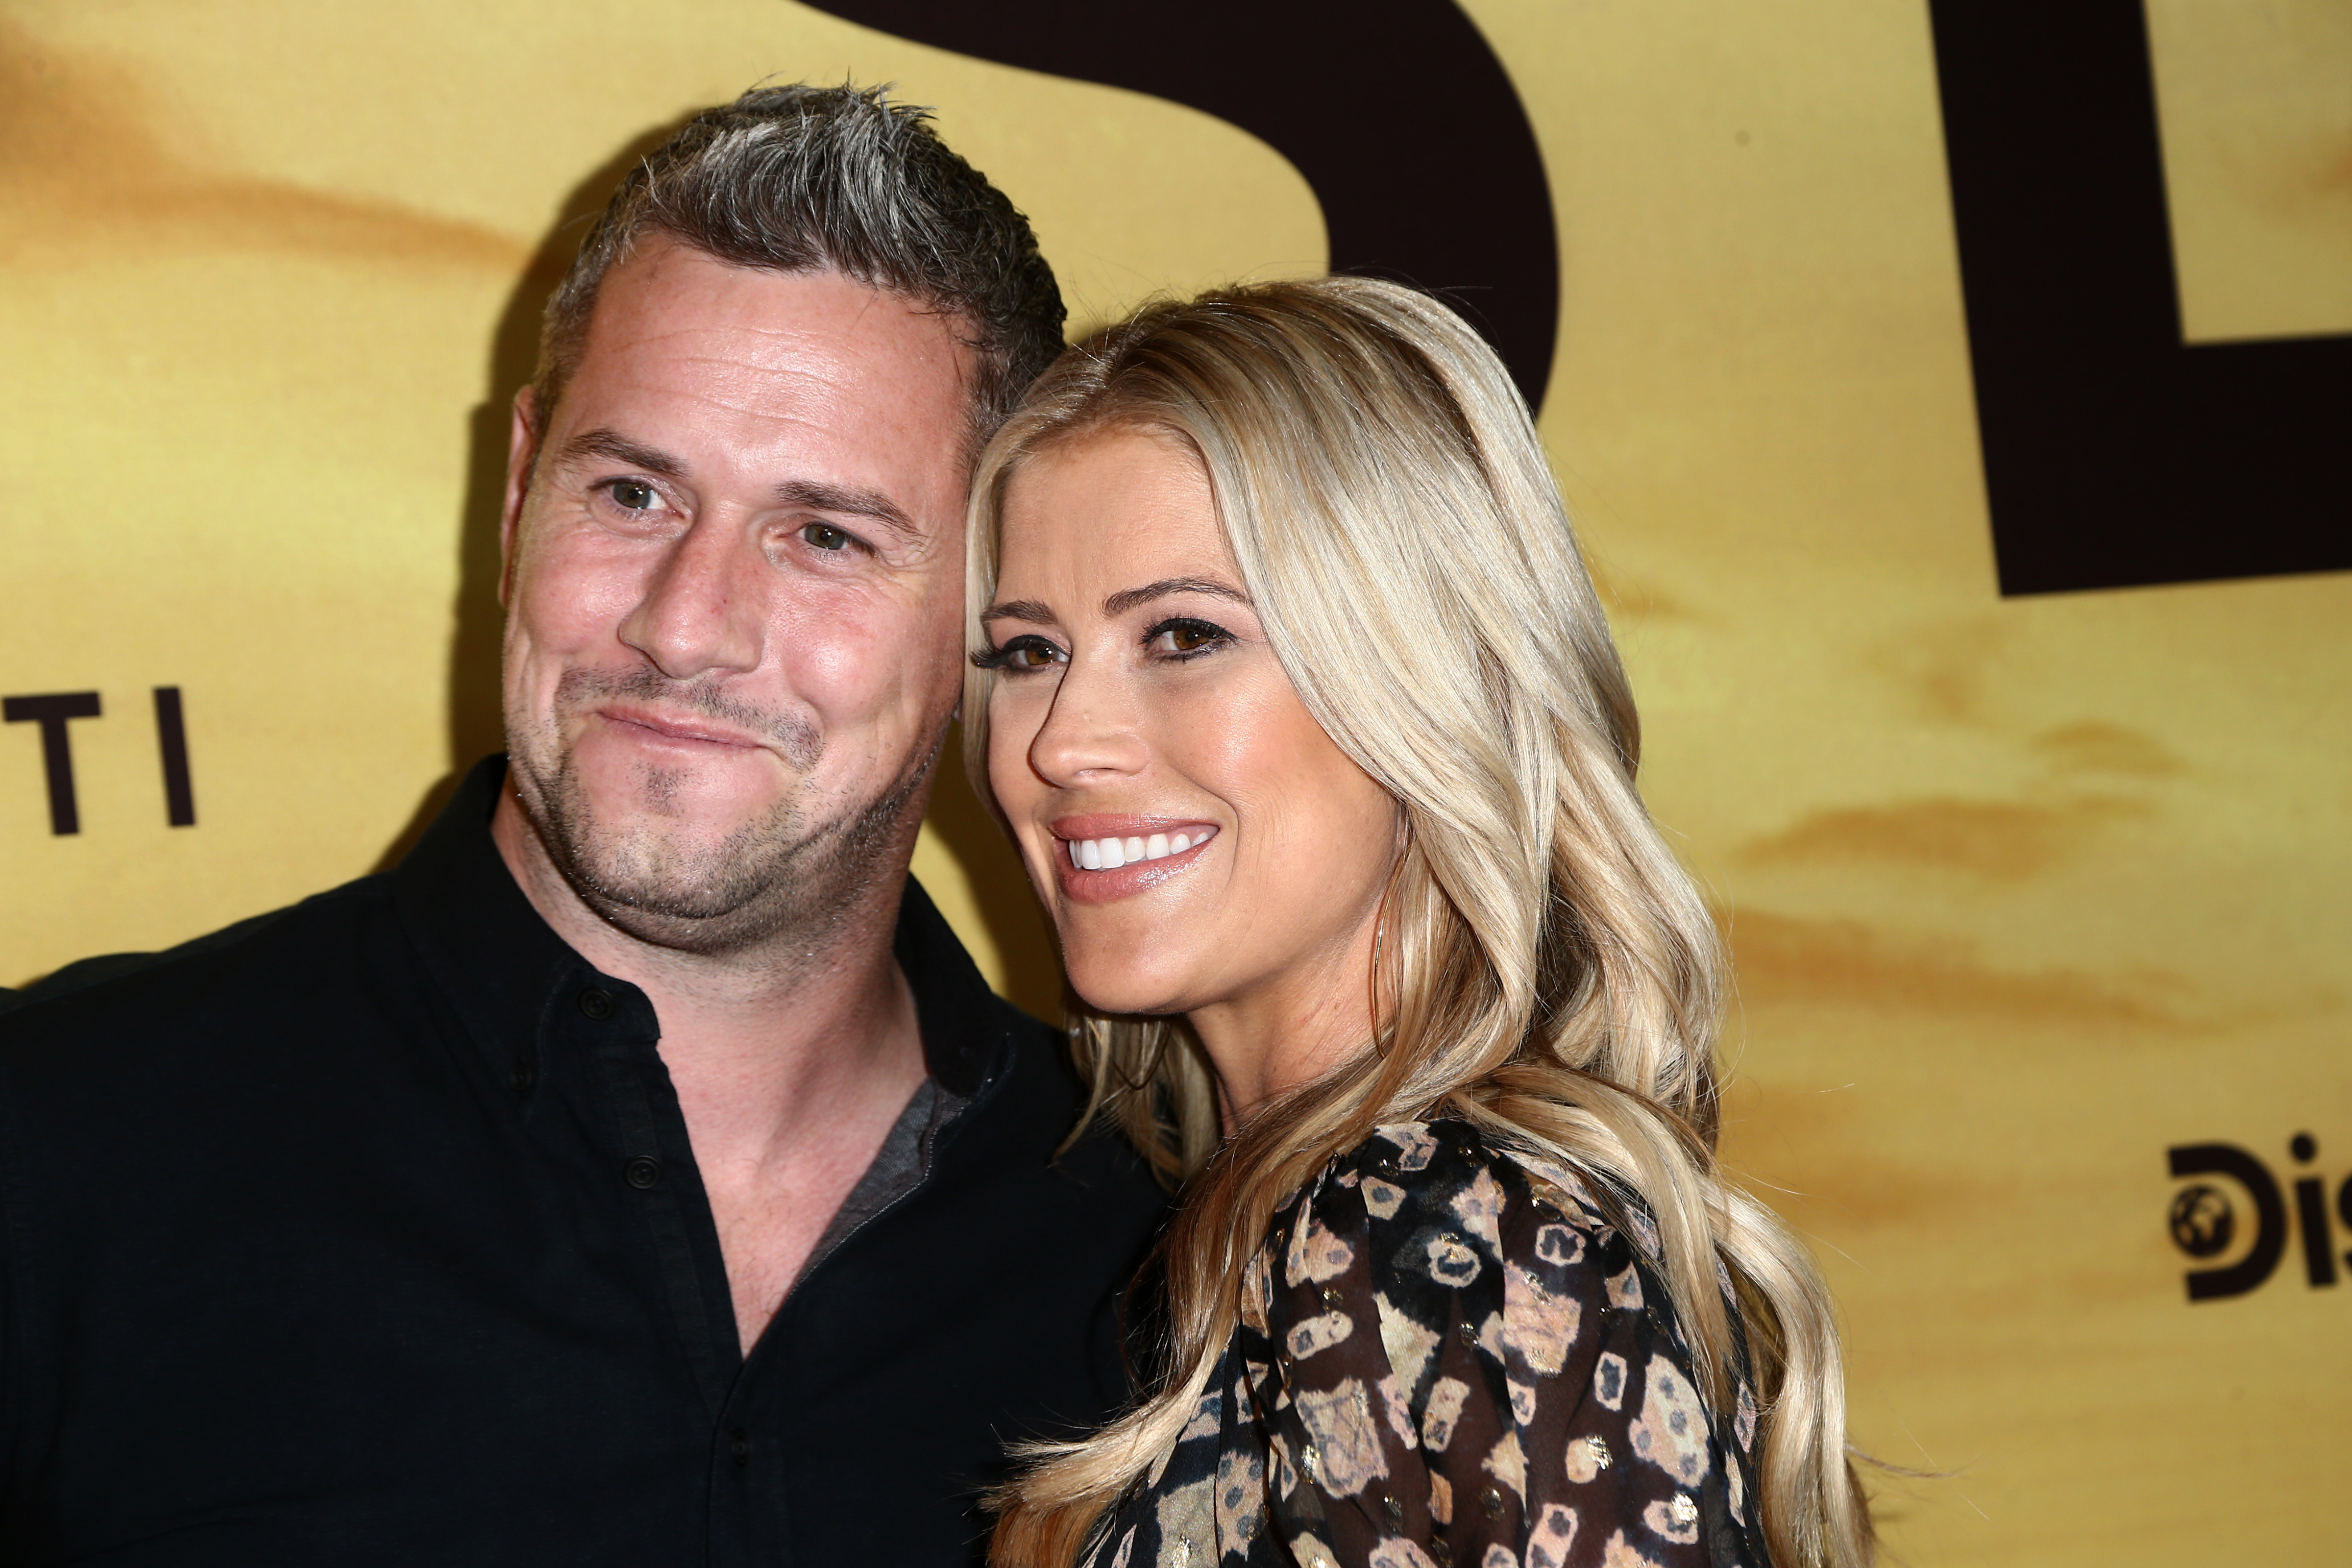 Christina Anstead is back to her maiden name on Instagram amid divorce